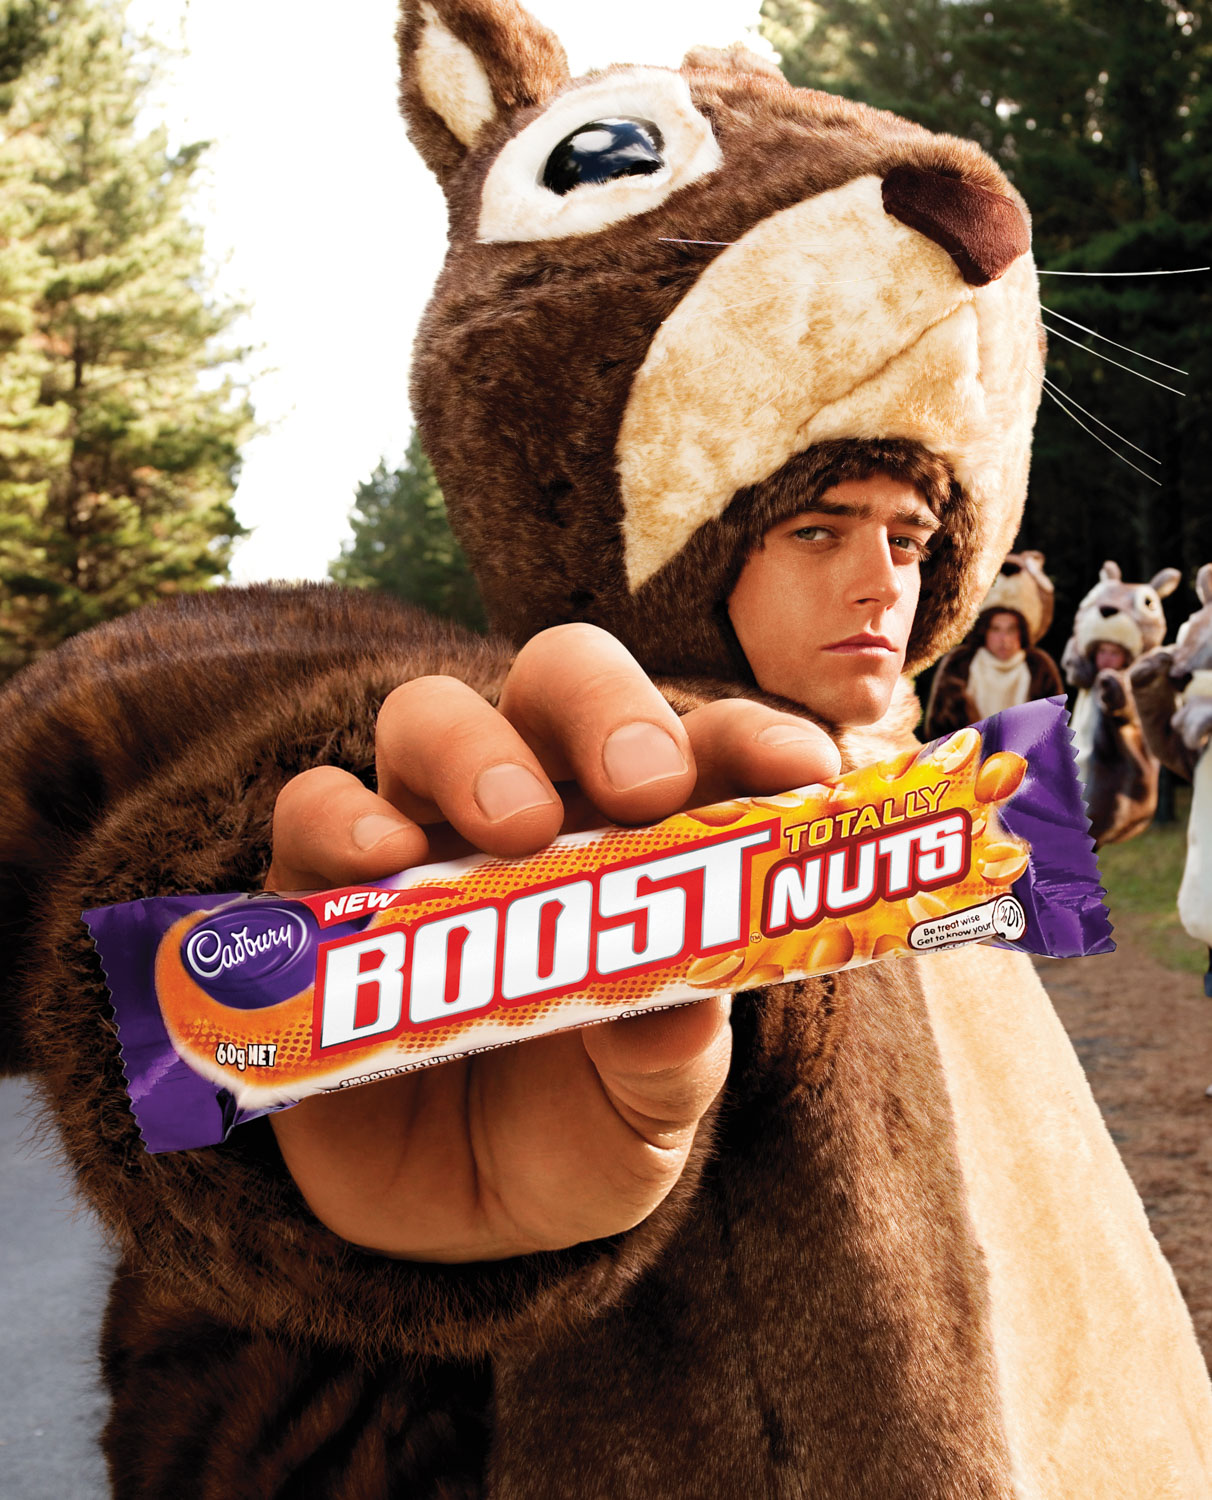 CadburyBoostBar_Portrait copy.jpg